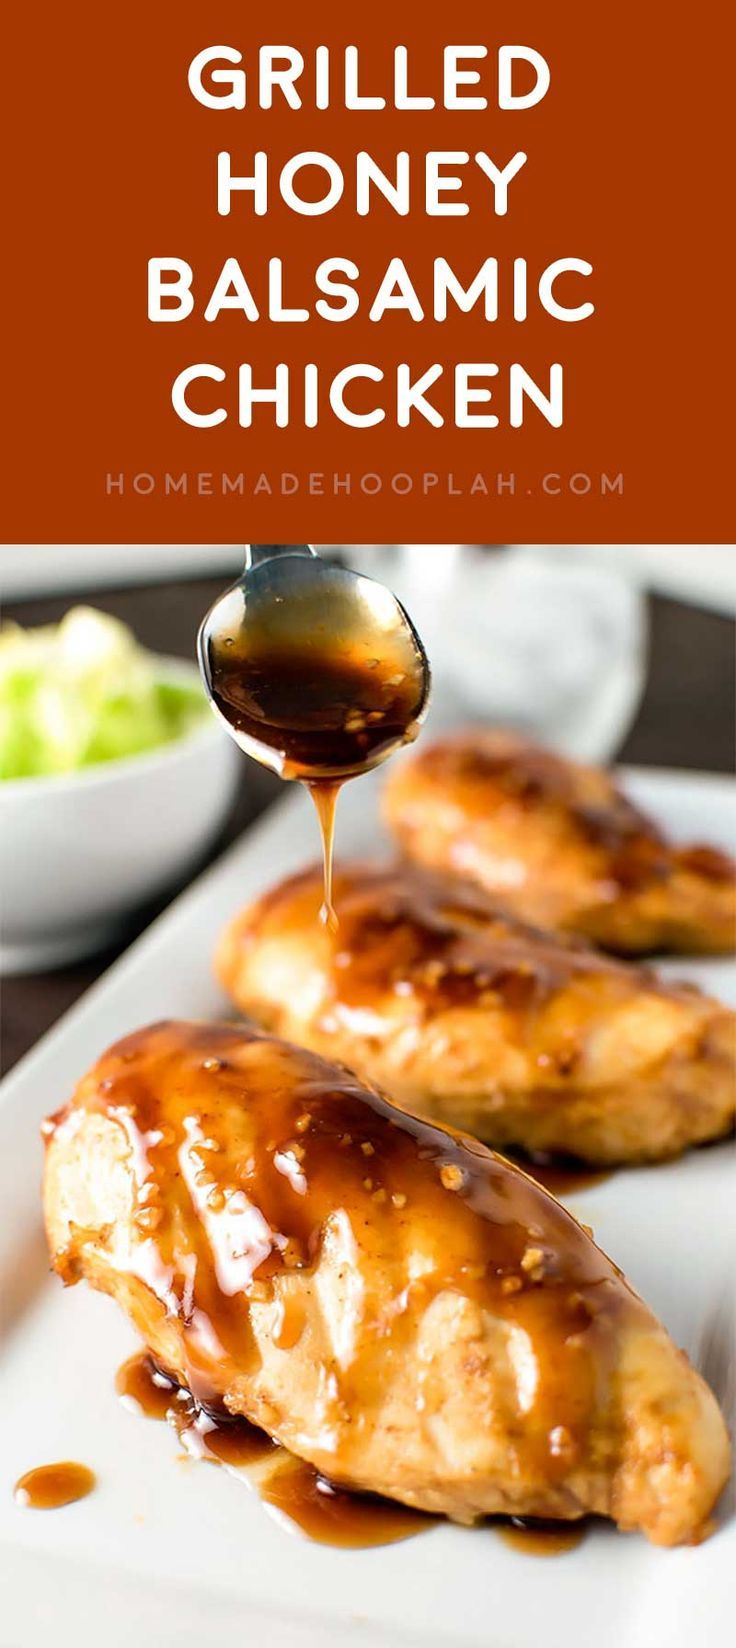 Grilled Honey Balsamic Chicken! A sweet honey balsamic marinade that makes chicken unbelievably tender and juicy. Marinates in half the time for twice the flavor! | HomemadeHooplah.com (Balsamic Chicken)